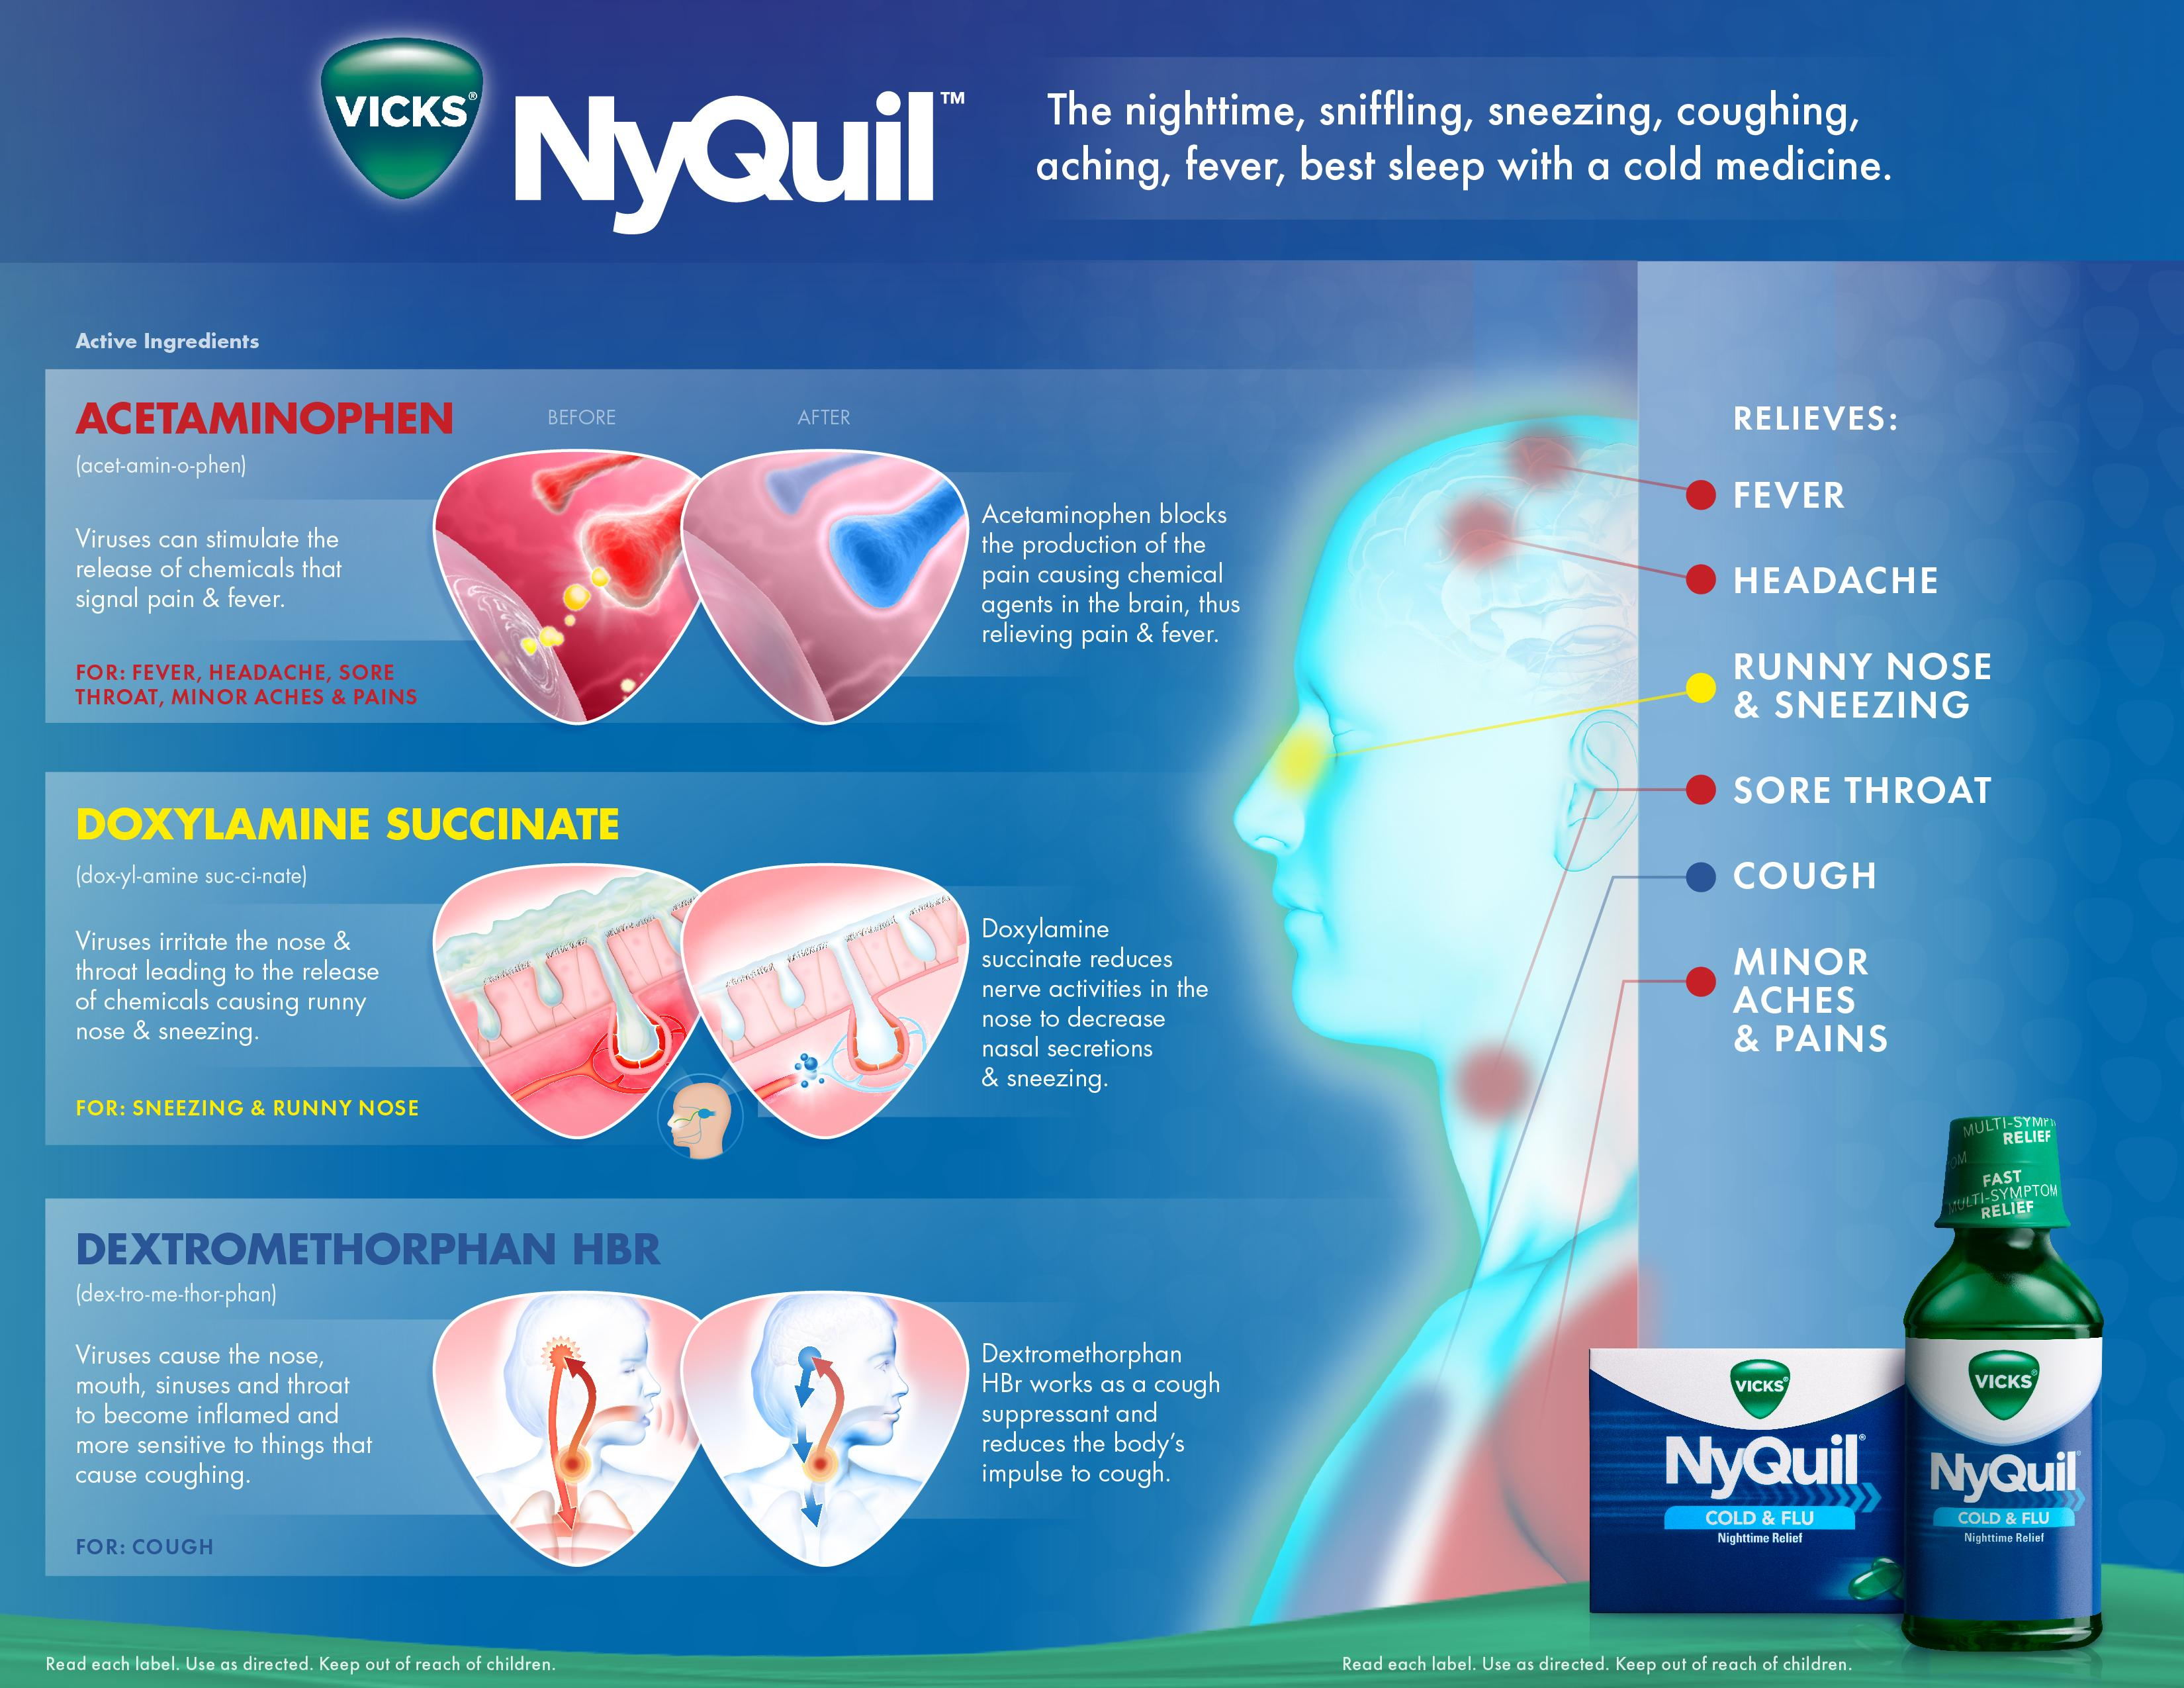 cold and flu relief when you have a cold turn to vicks nyquil cold #032726